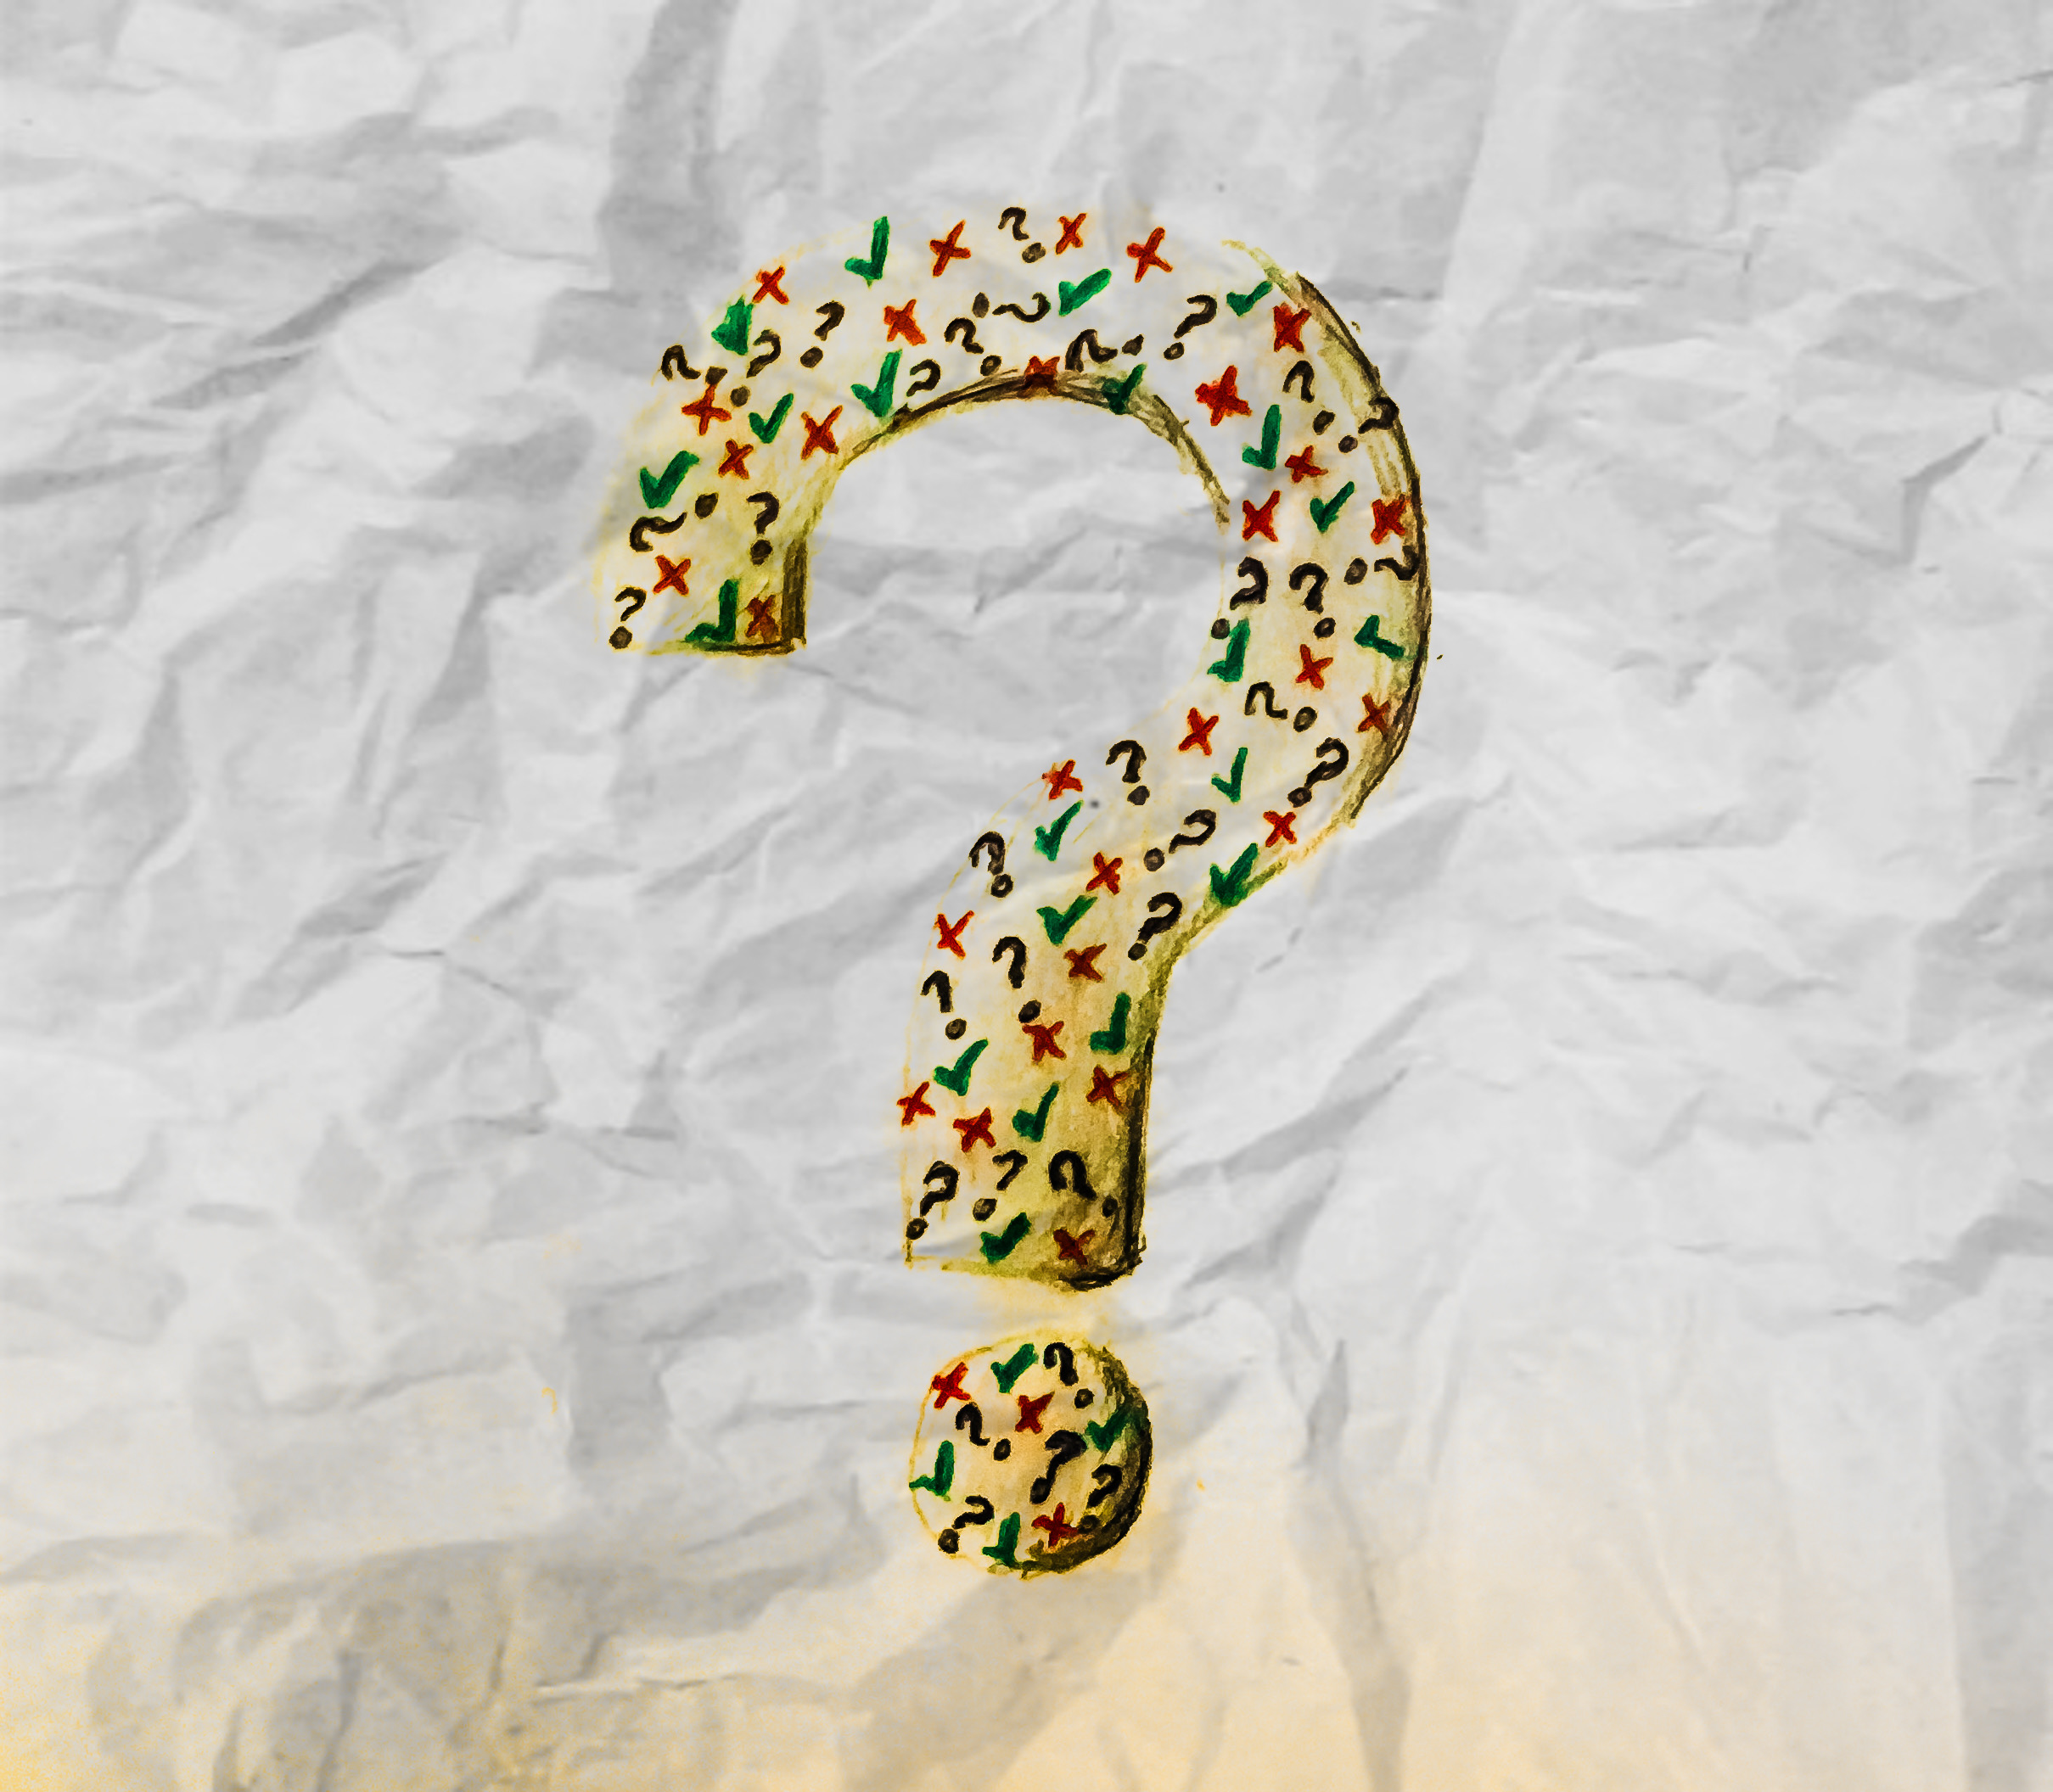 Fact or fiction? Picture of a question mark on wrinkled paper background. Inside the question mark are tiny little question marks, ticks and crosses to create an artistic effect.